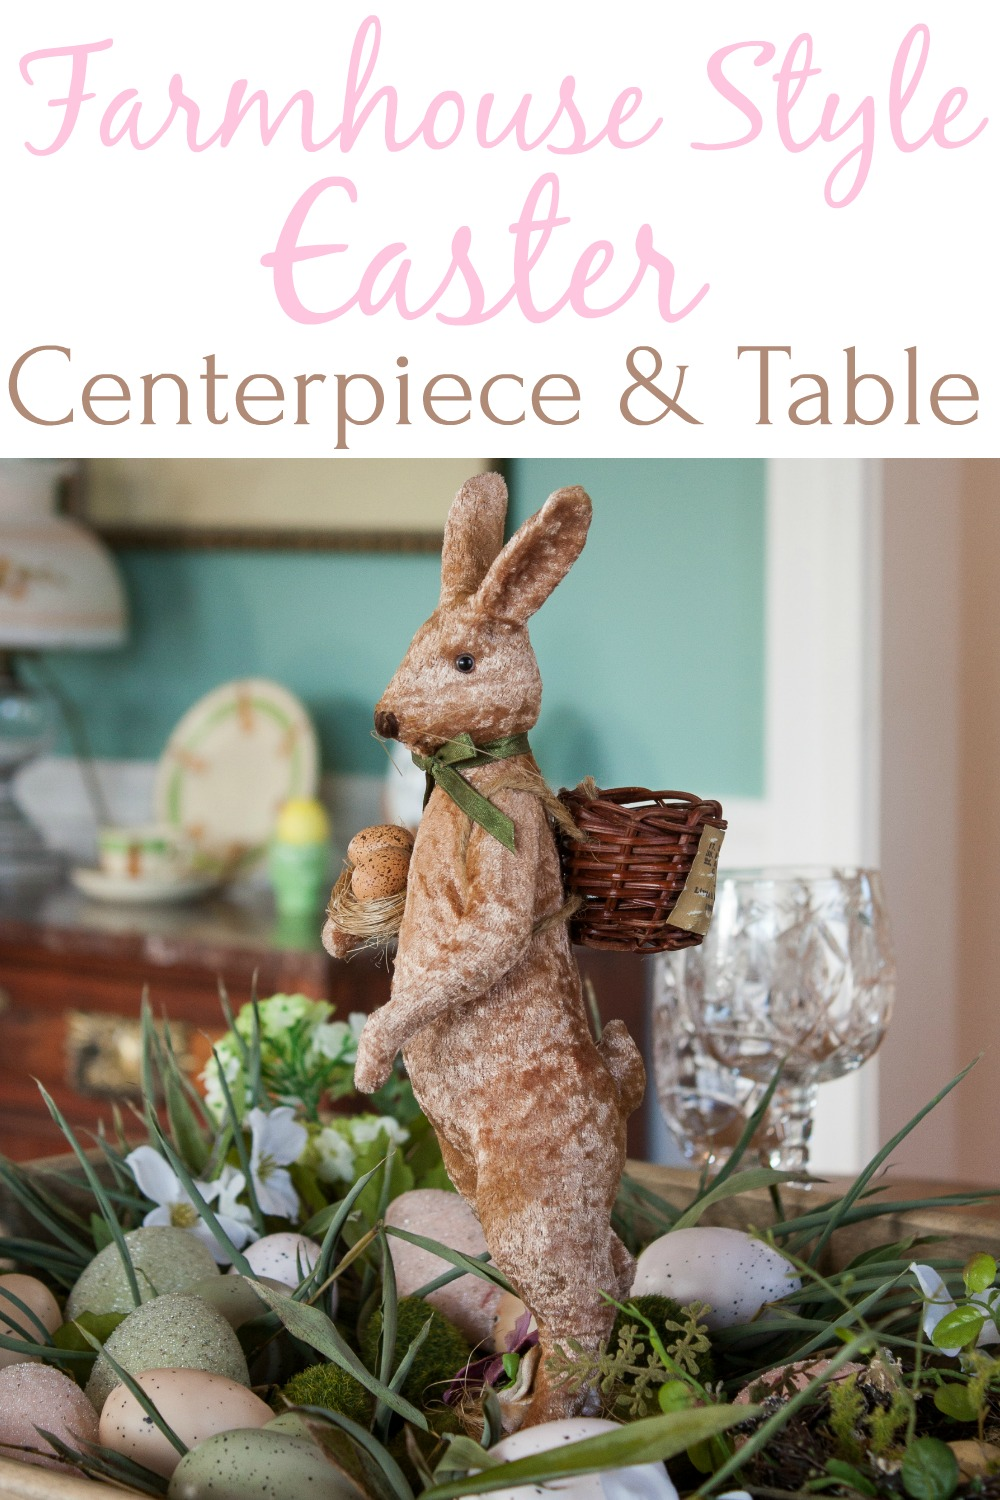 Farmhouse Style Easter Centerpiece and Table - Learn how to create a farmhouse style Easter centerpiece for your Easter table and get ideas for setting the table for Easter. #easter #eastercenterpiece #eastertablescape #farmhouse #farmhousecenterpiece #farmhousetable